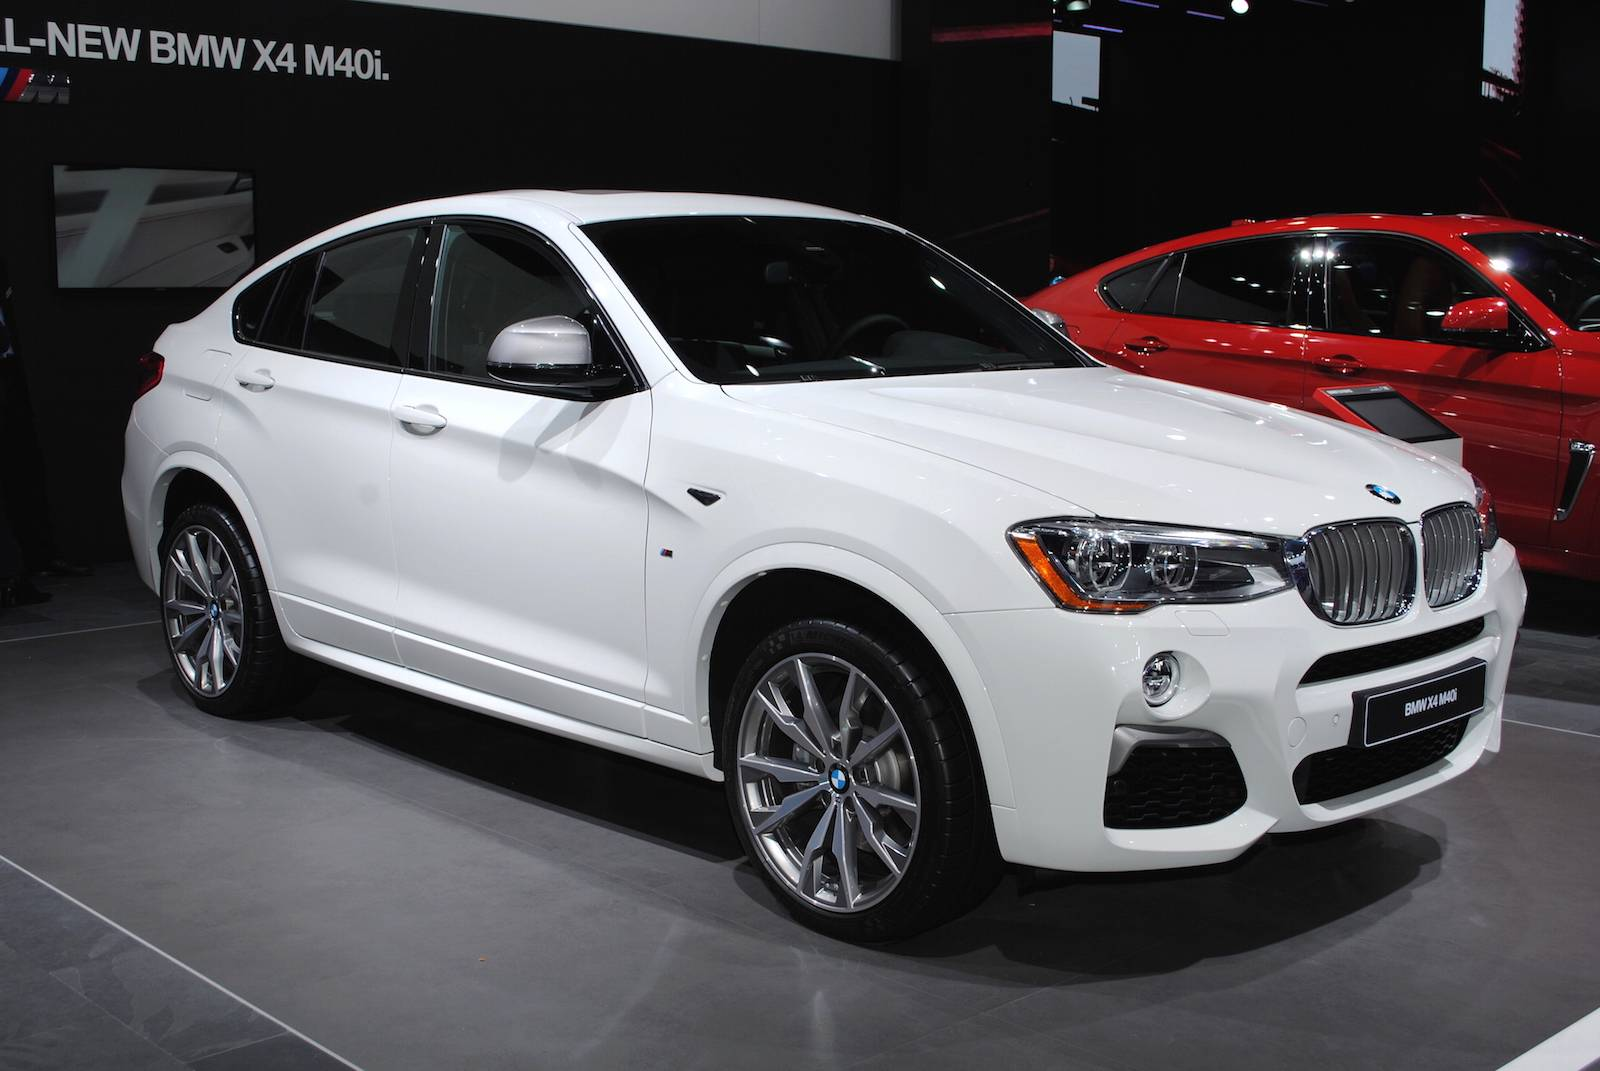 detroit 2016 bmw x4 m40i gtspirit. Black Bedroom Furniture Sets. Home Design Ideas